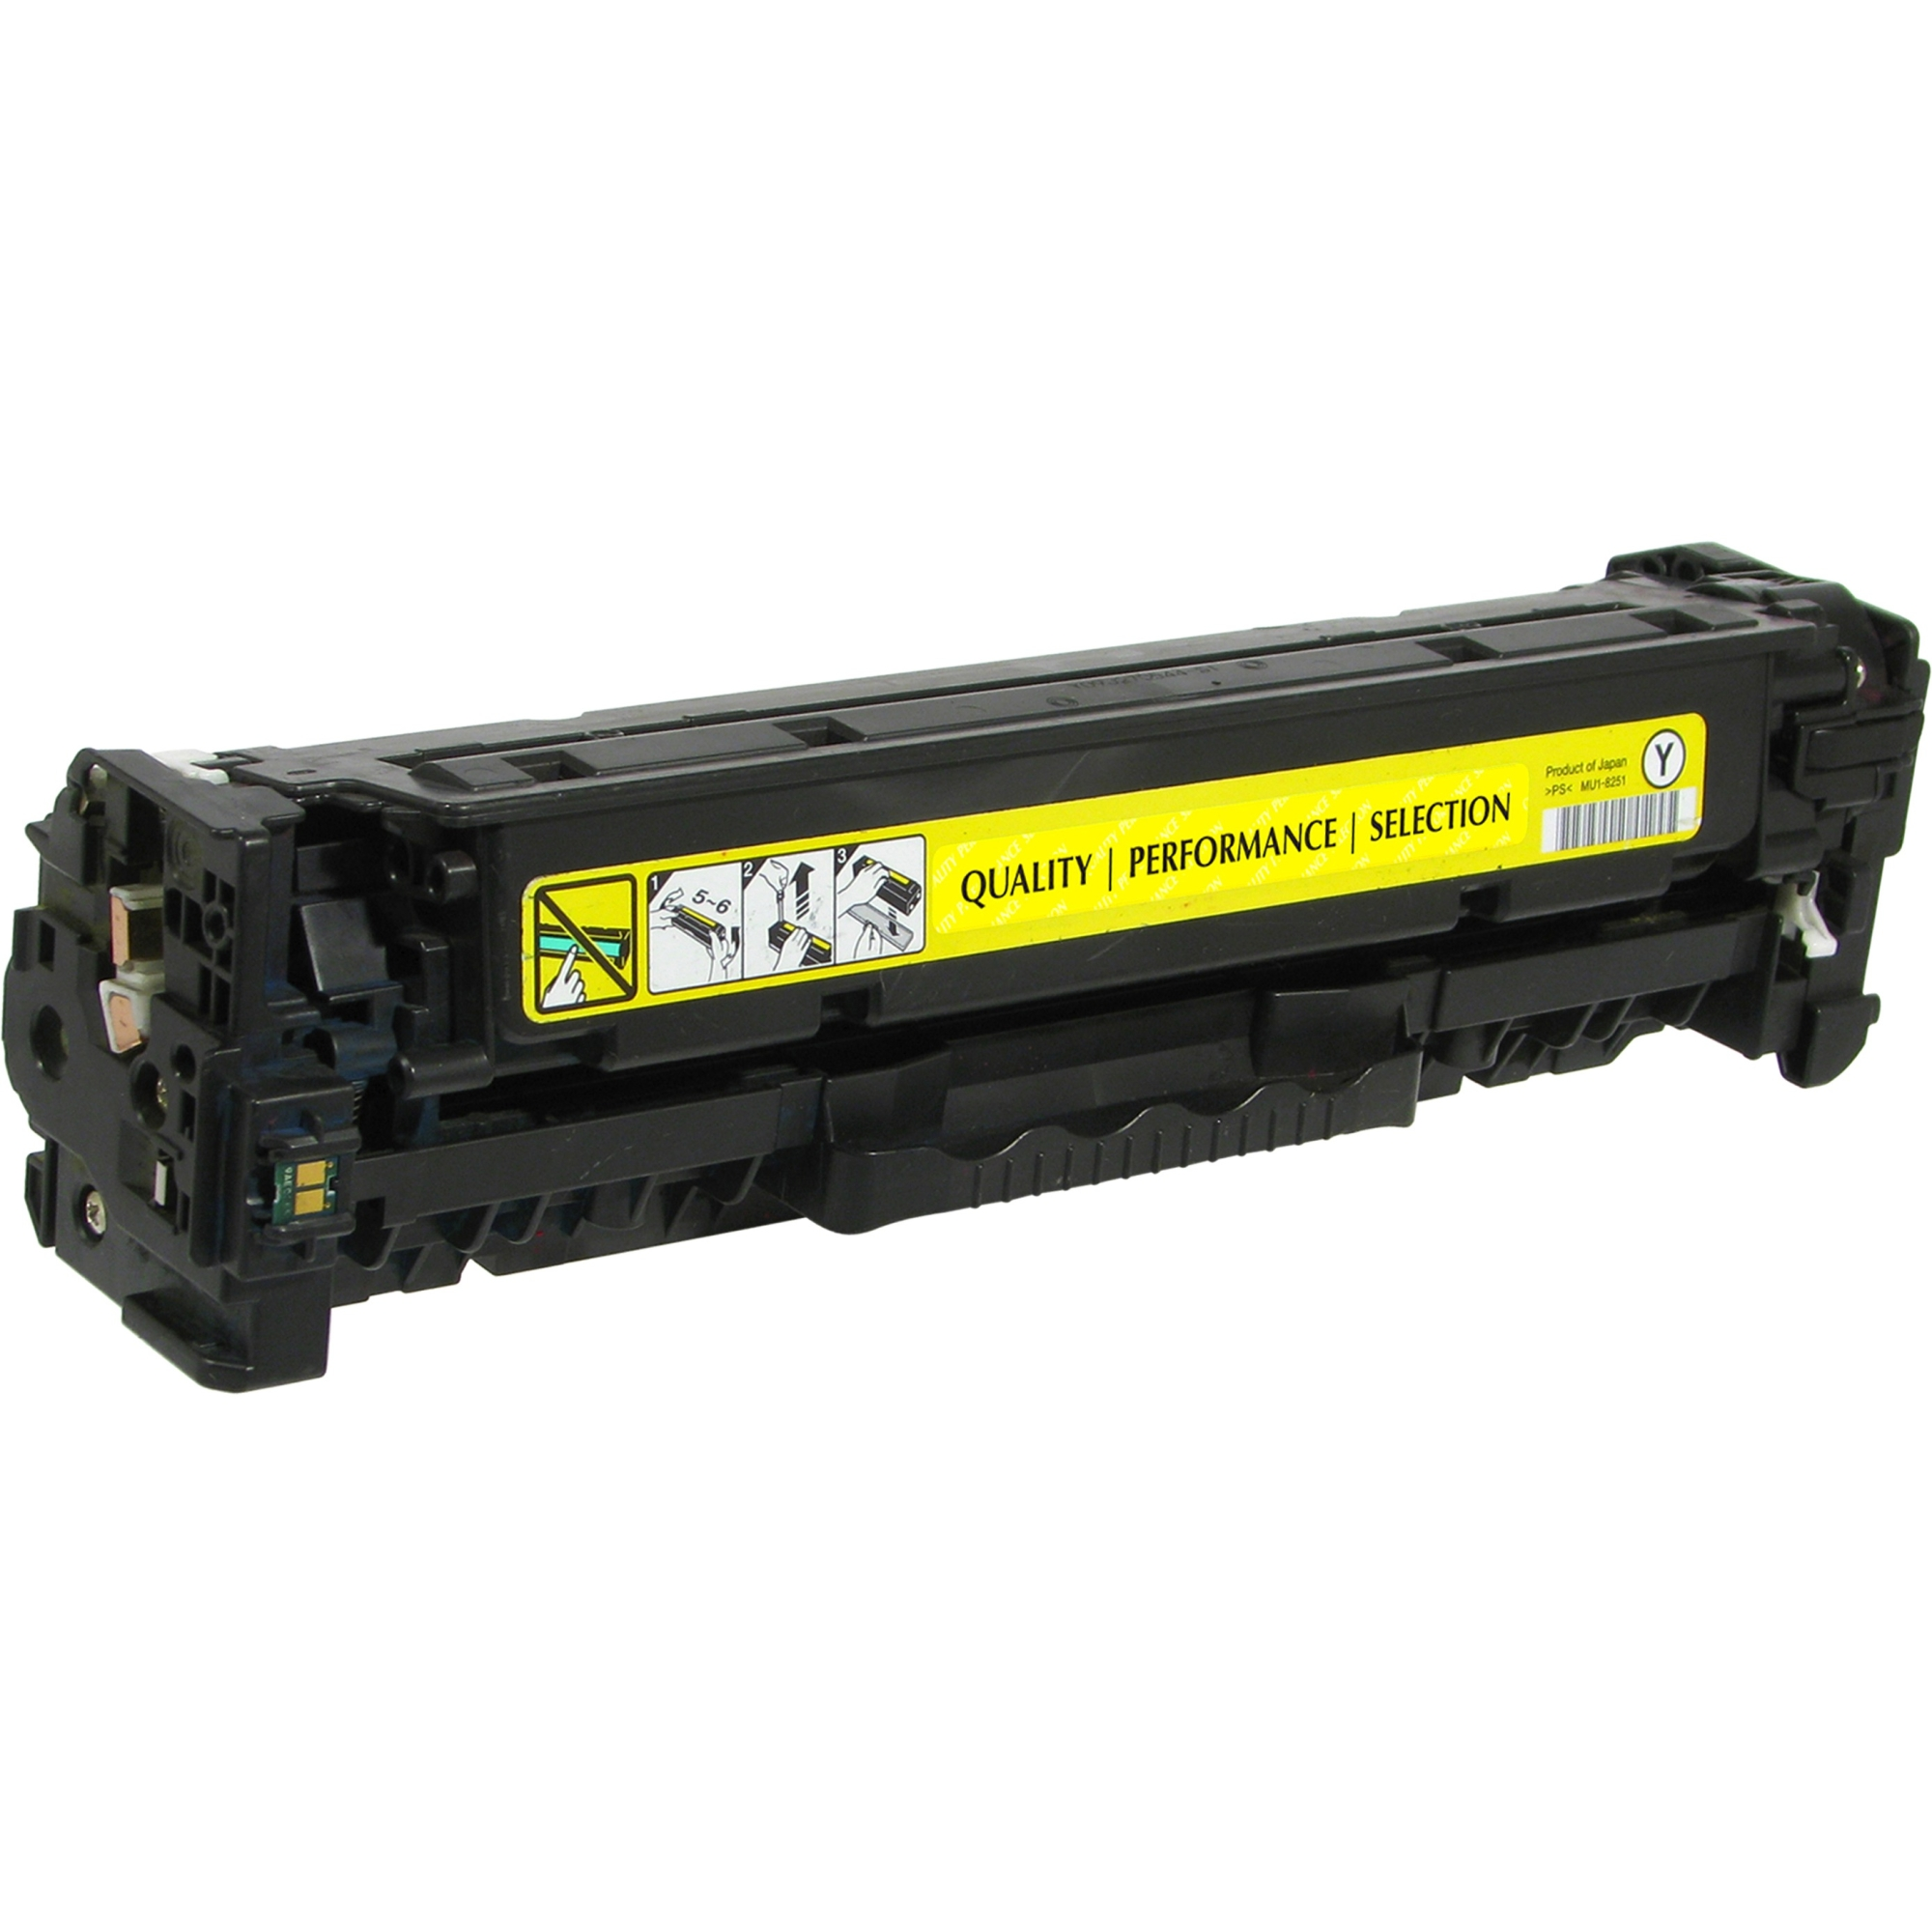 Toner Cartridge - Replacement for HP (CE412A) - Yellow - Laser - 2600 Page